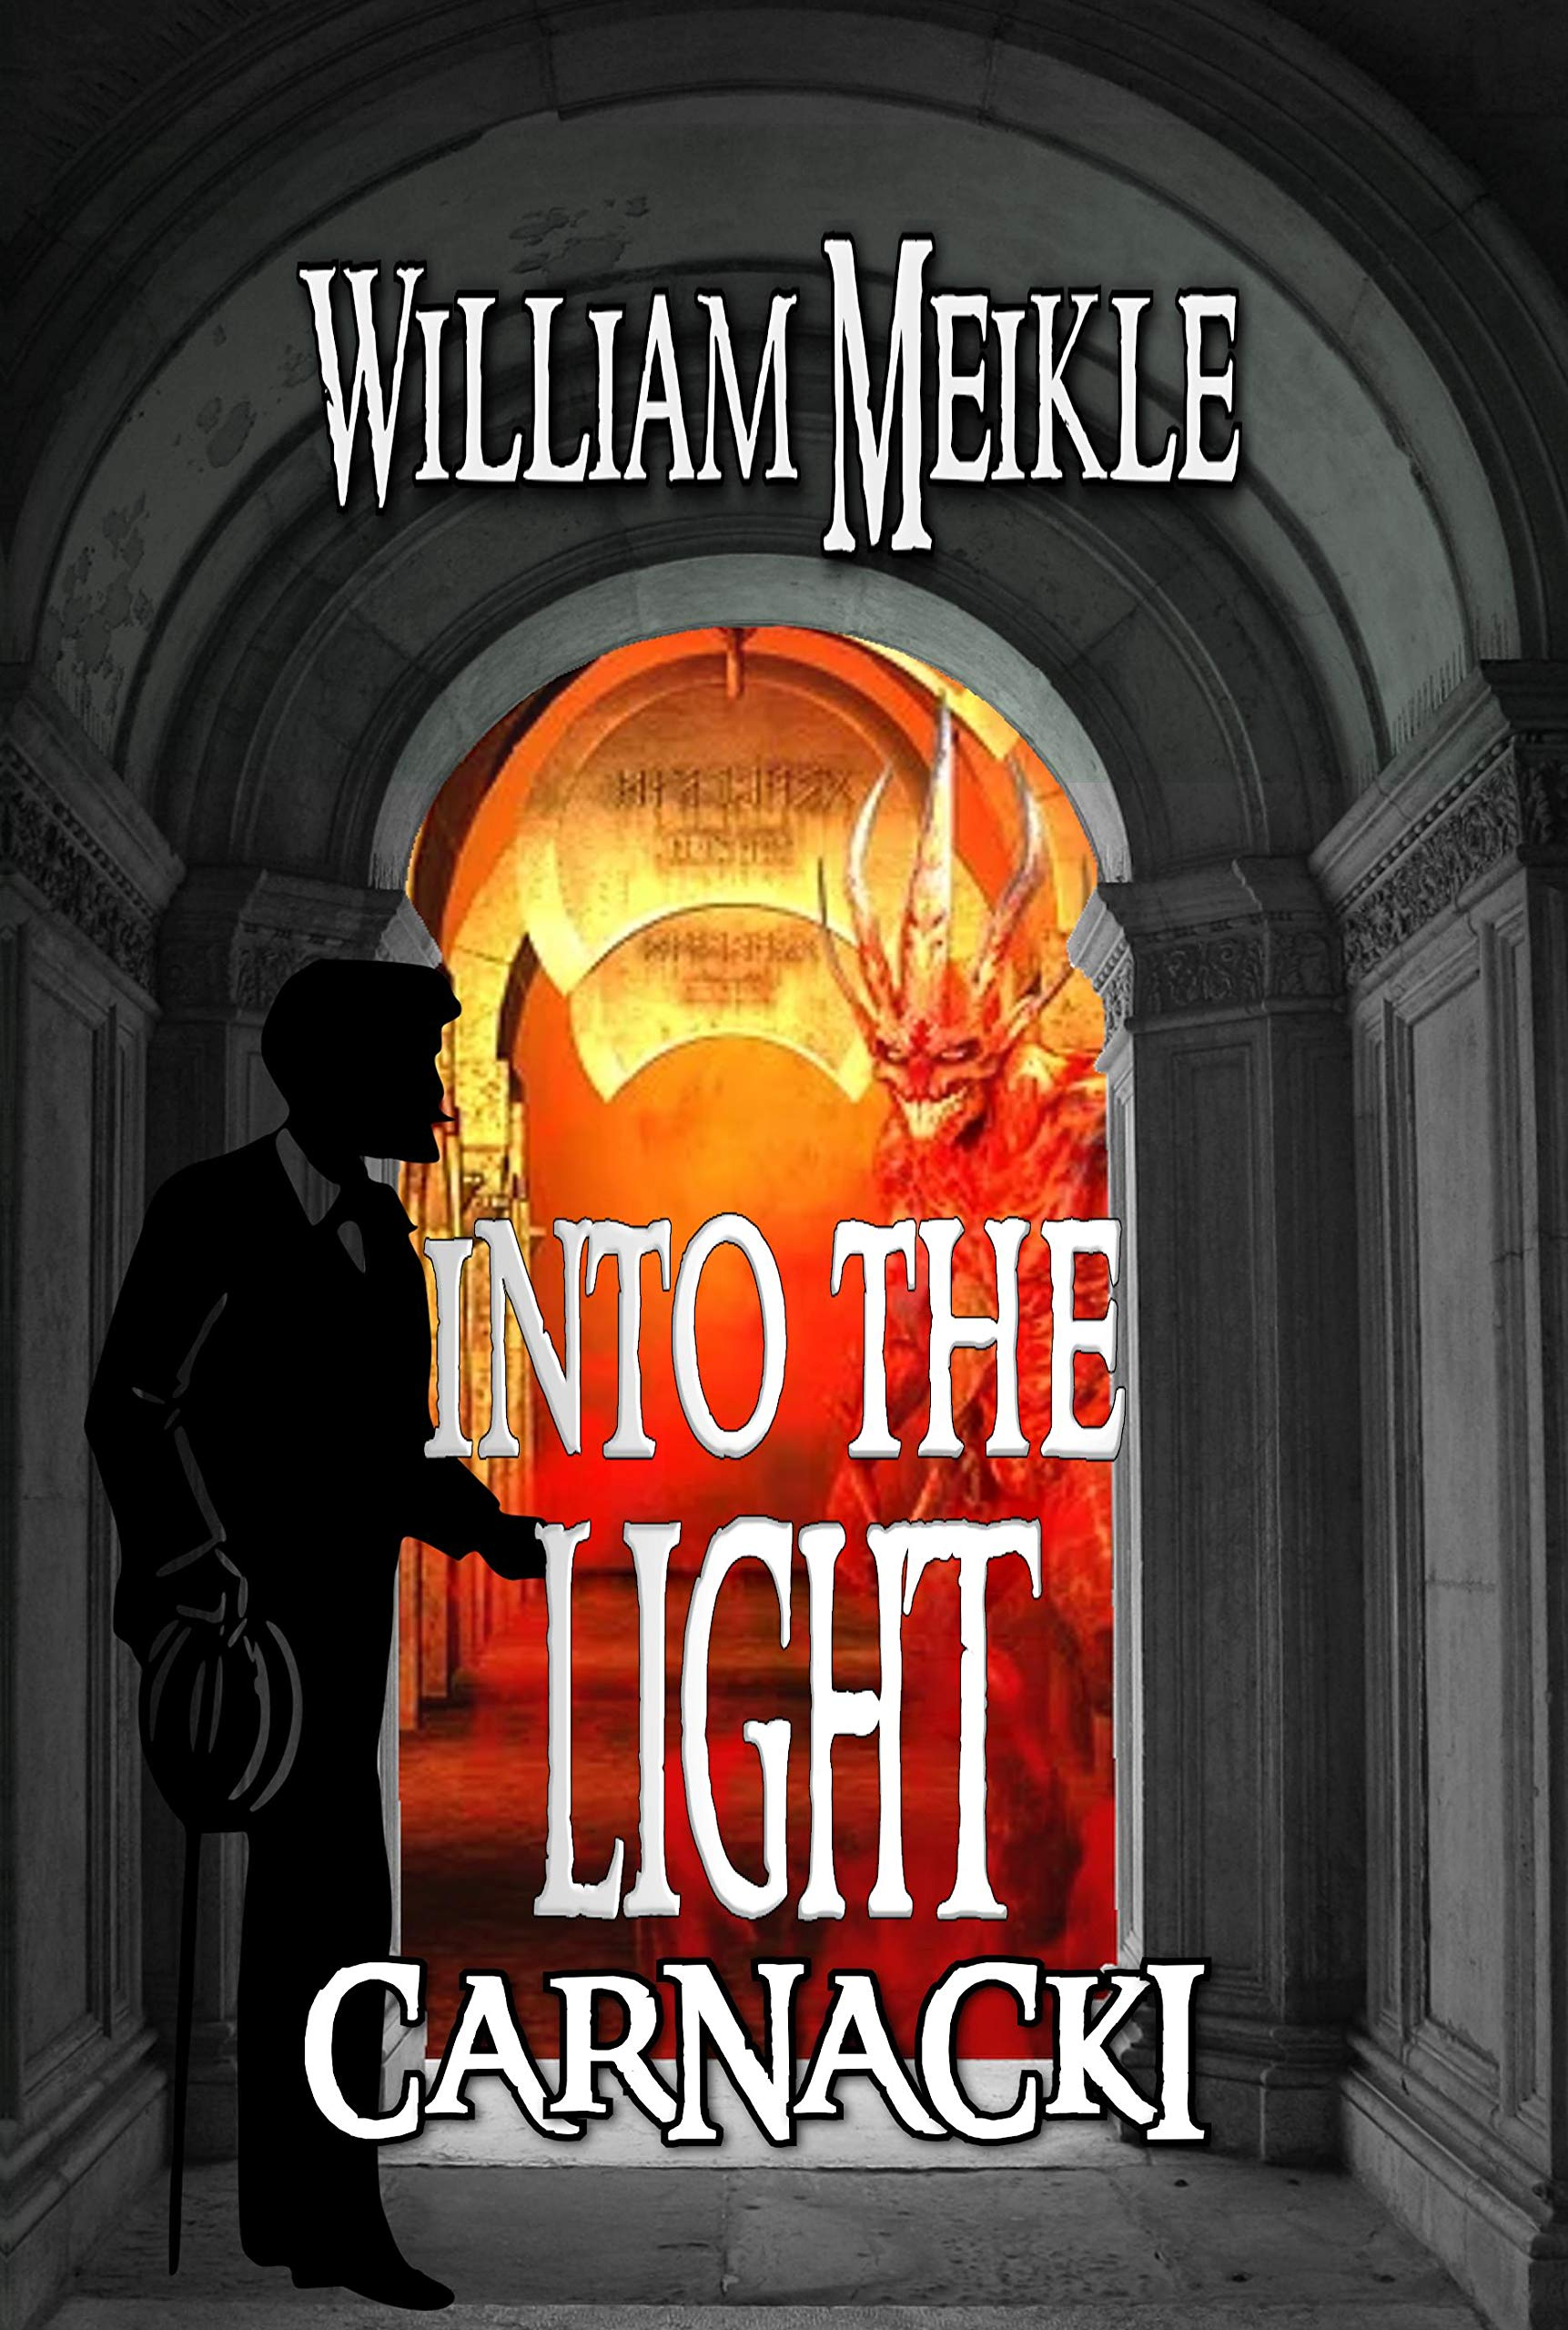 Carnacki: Into The Light: Three Carnacki stories (The William Meikle Chapbook Collection 43)